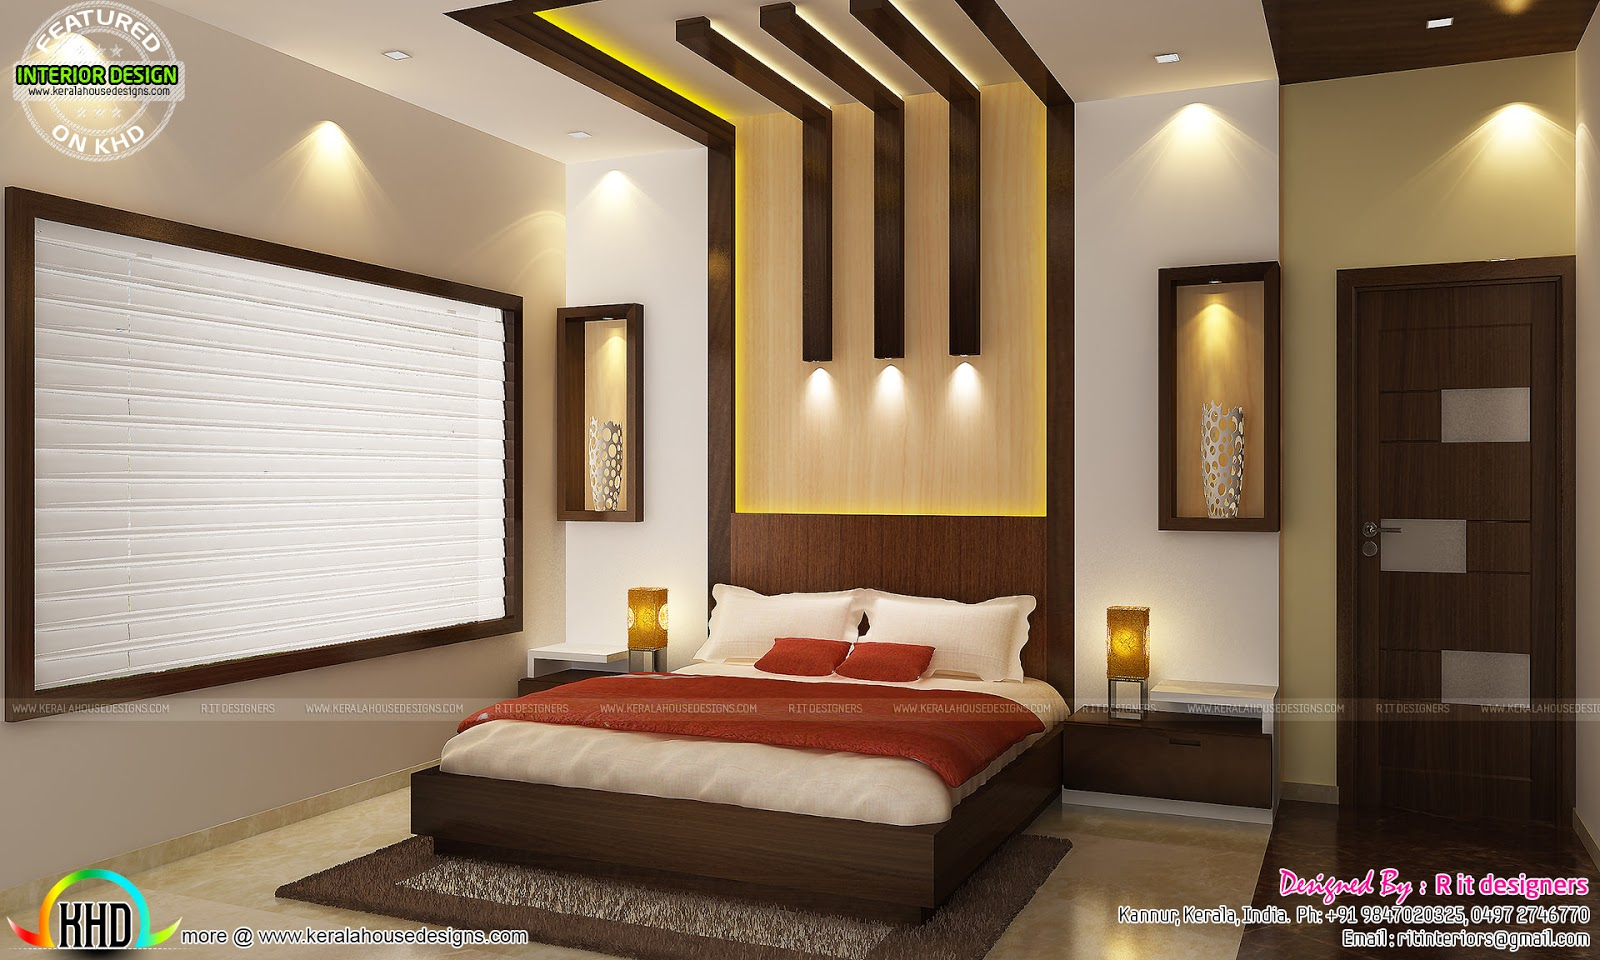 Kitchen living bedroom dining interior decor kerala for Bedroom design pictures